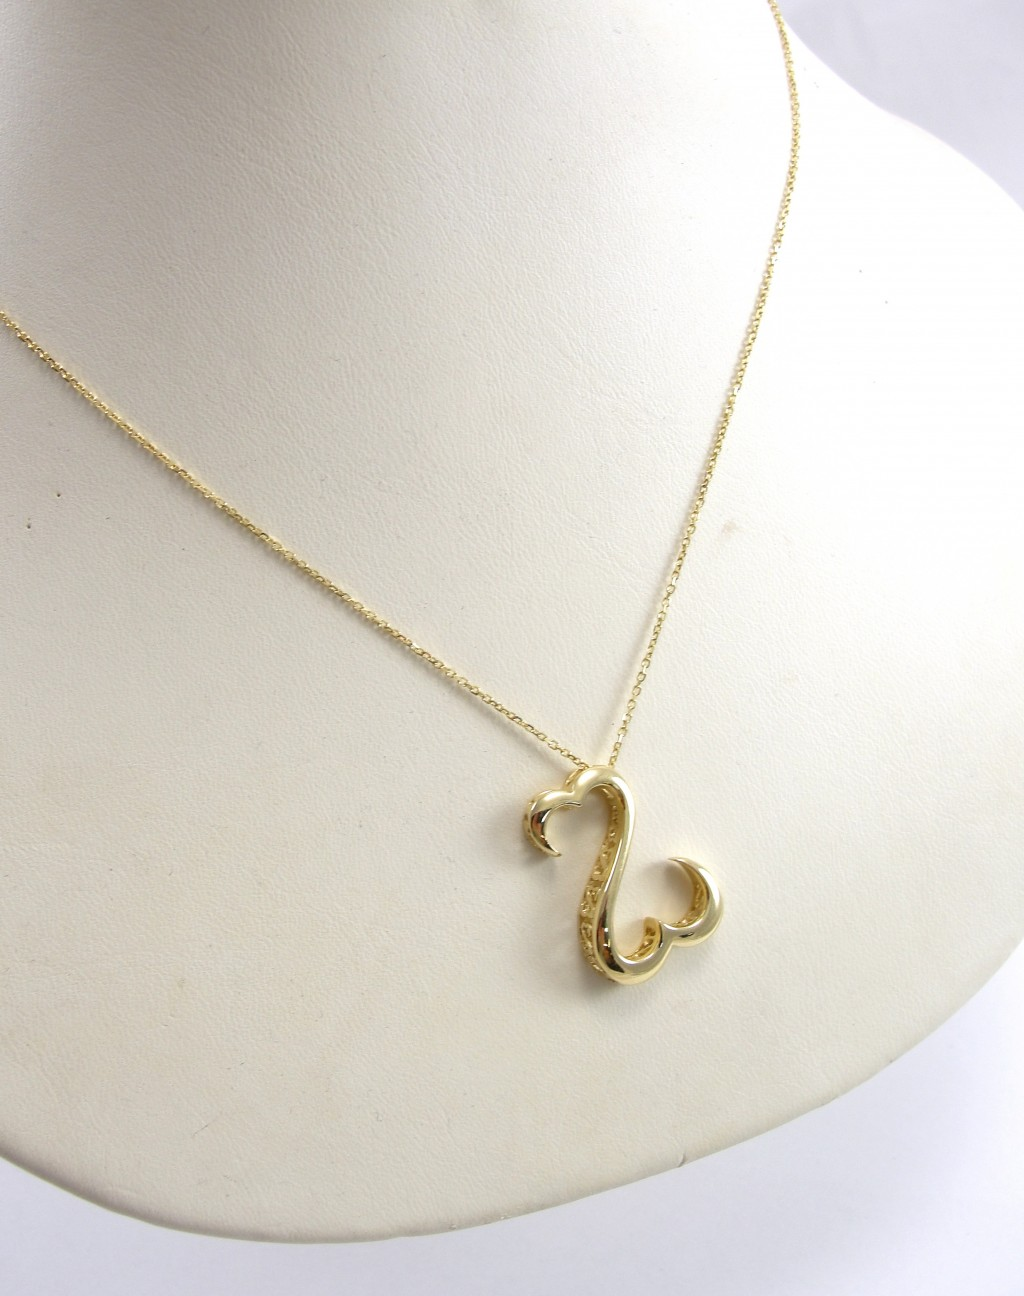 8 Lovely Open Heart Necklace By Jane Seymour in Jewelry